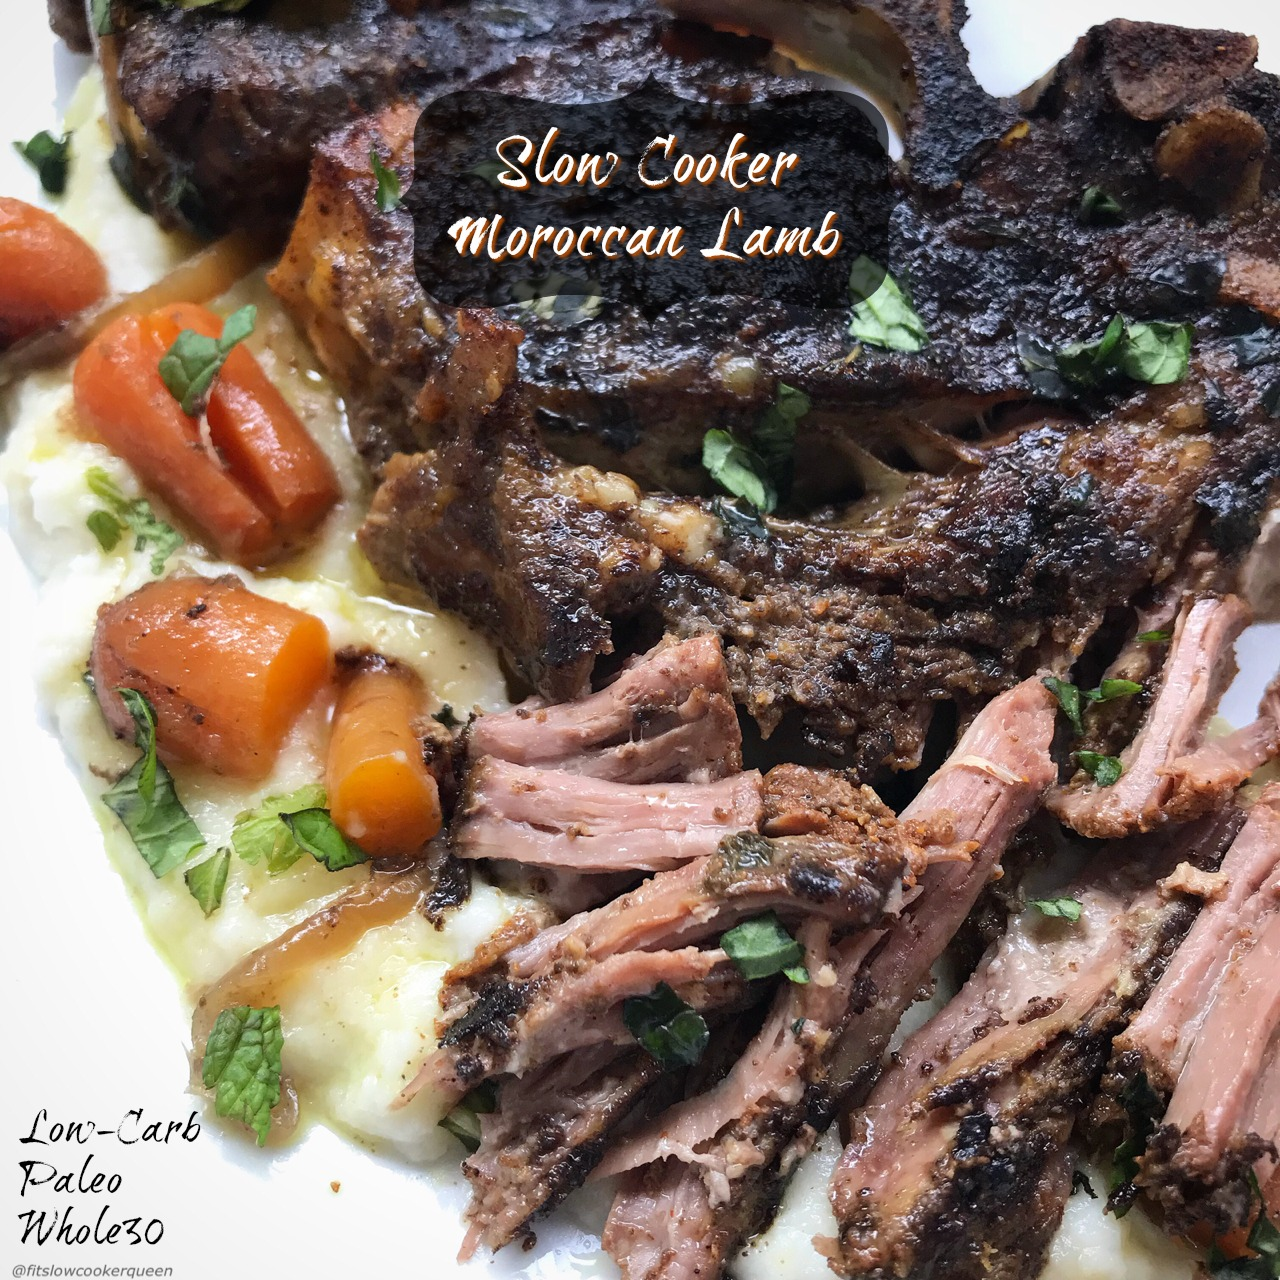 Lamb, spices, and a few vegetables are all you need for this simple and healthy slow cooker recipe. Together theseingredients willbring the flavors of Morocco to your kitchen.